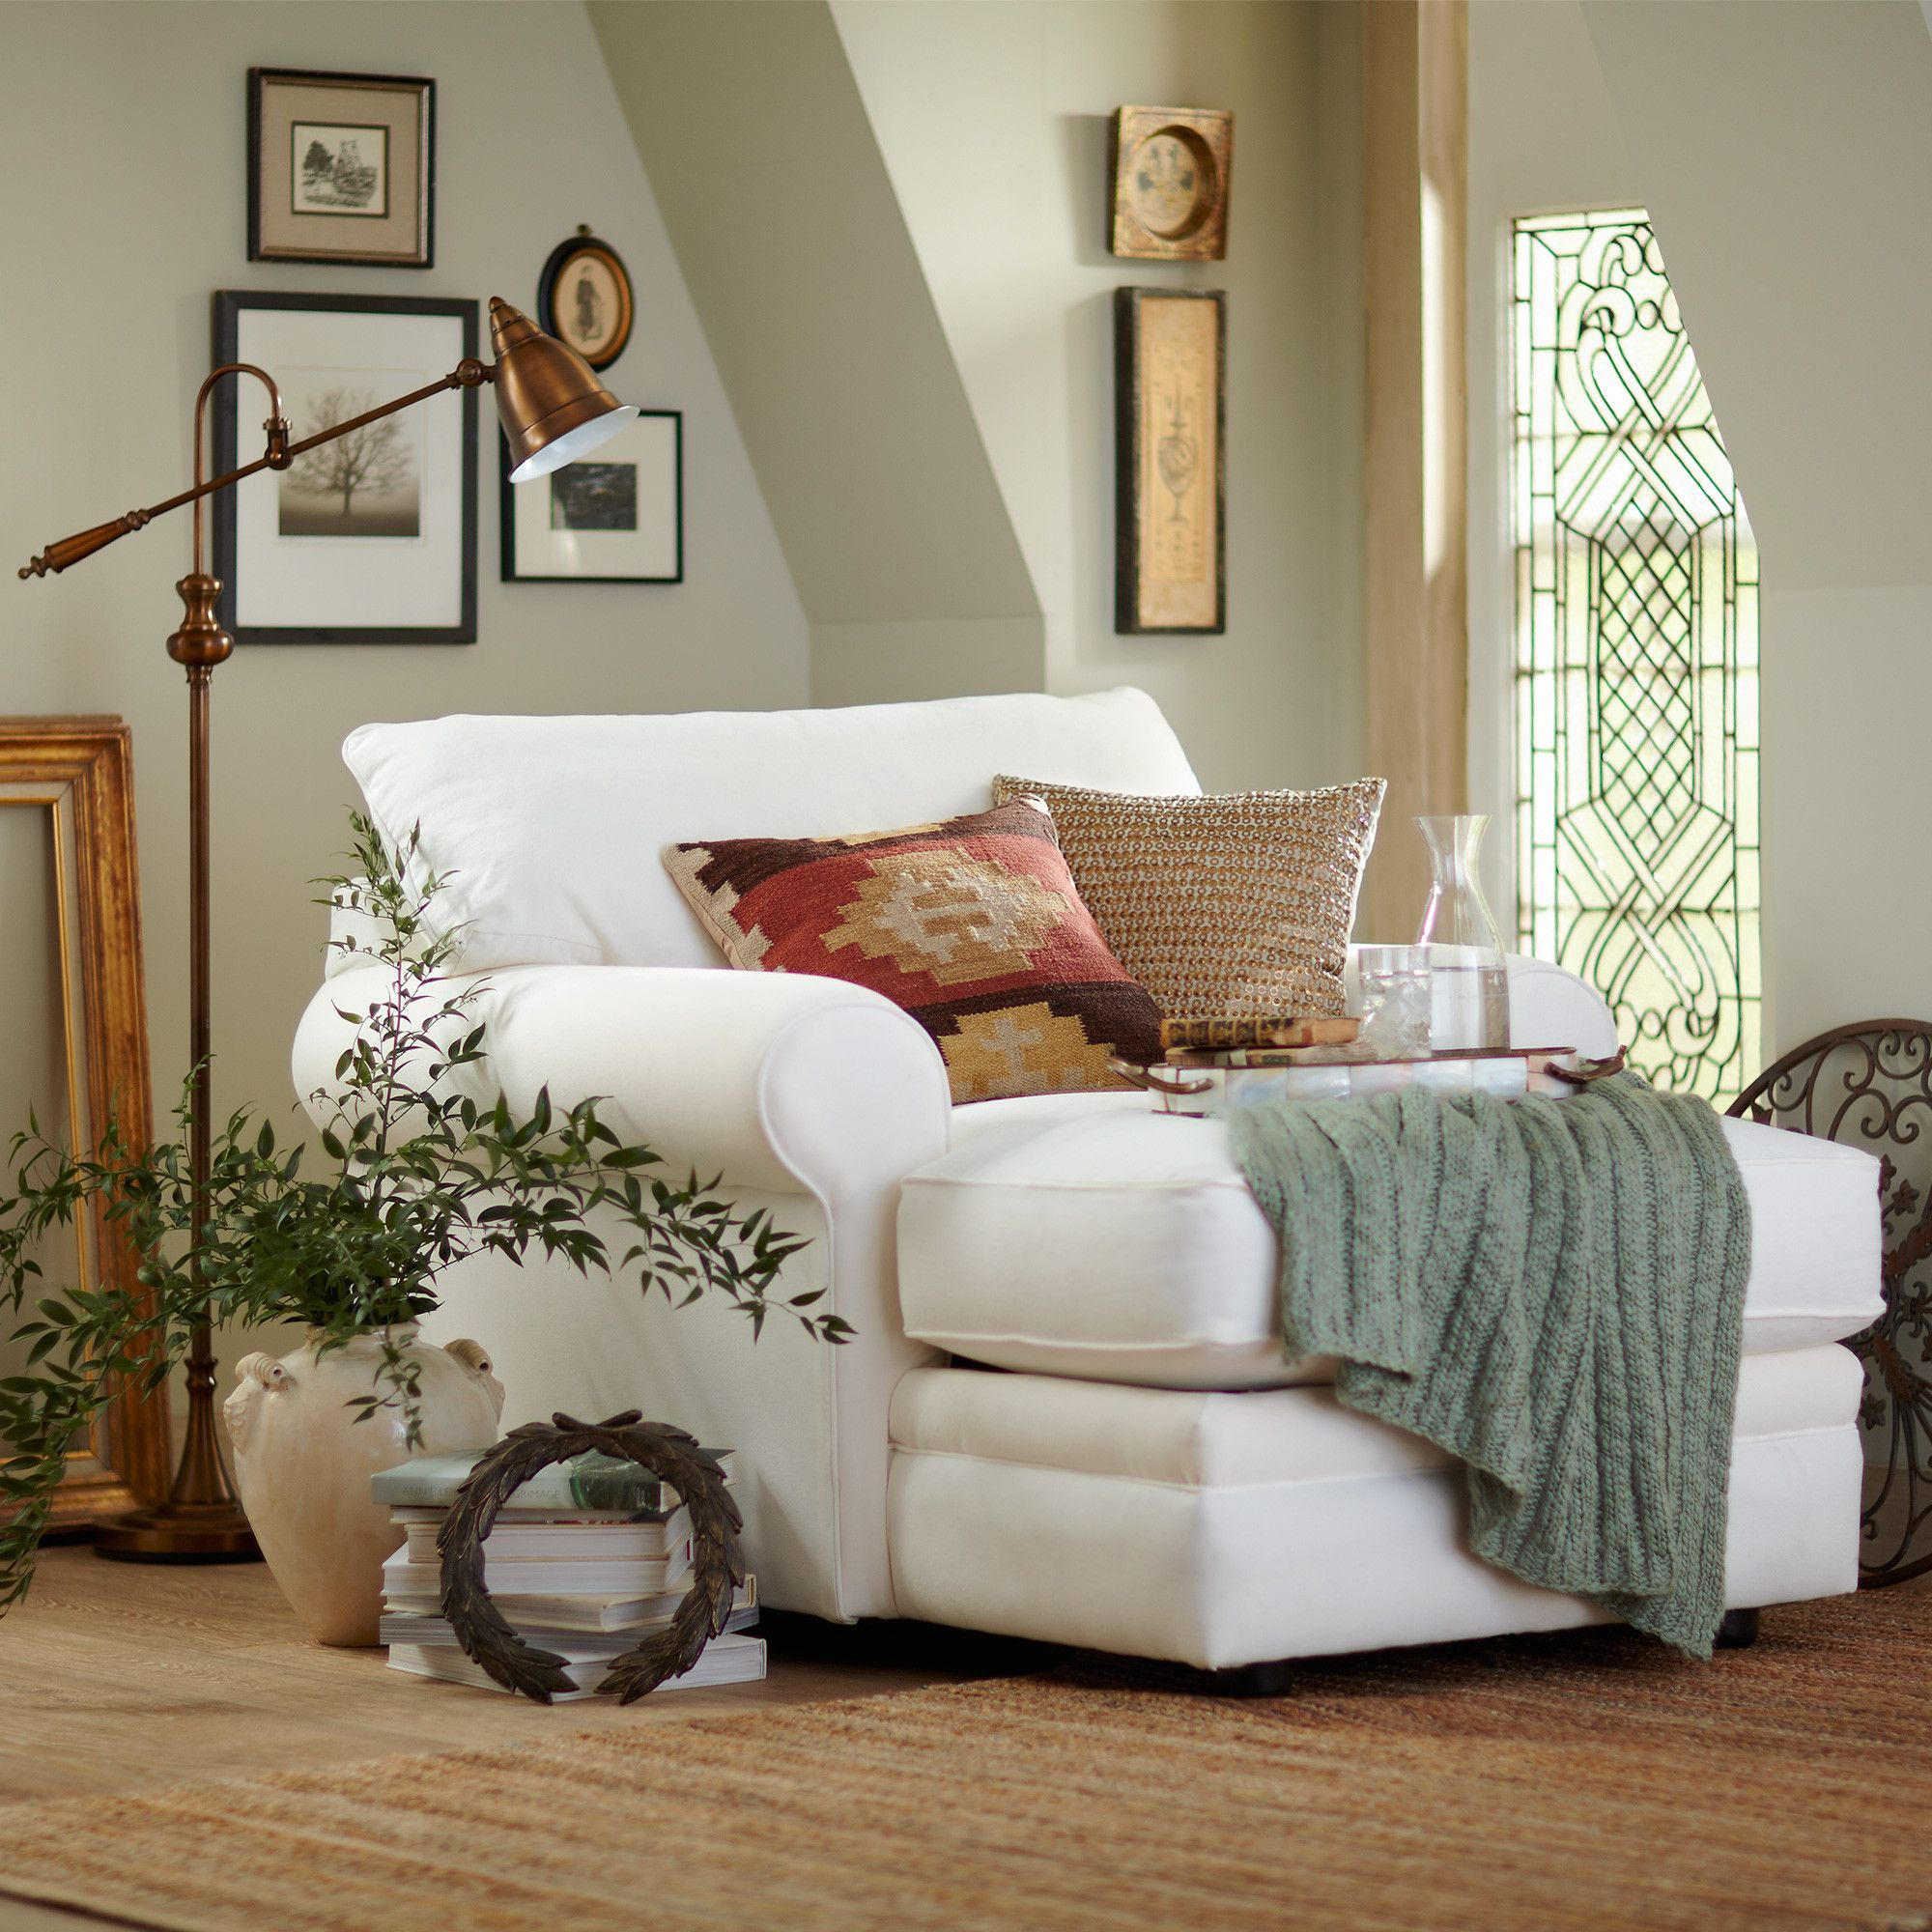 most with leather chair for in comforter comfortable g chairs rustic reading ottoman